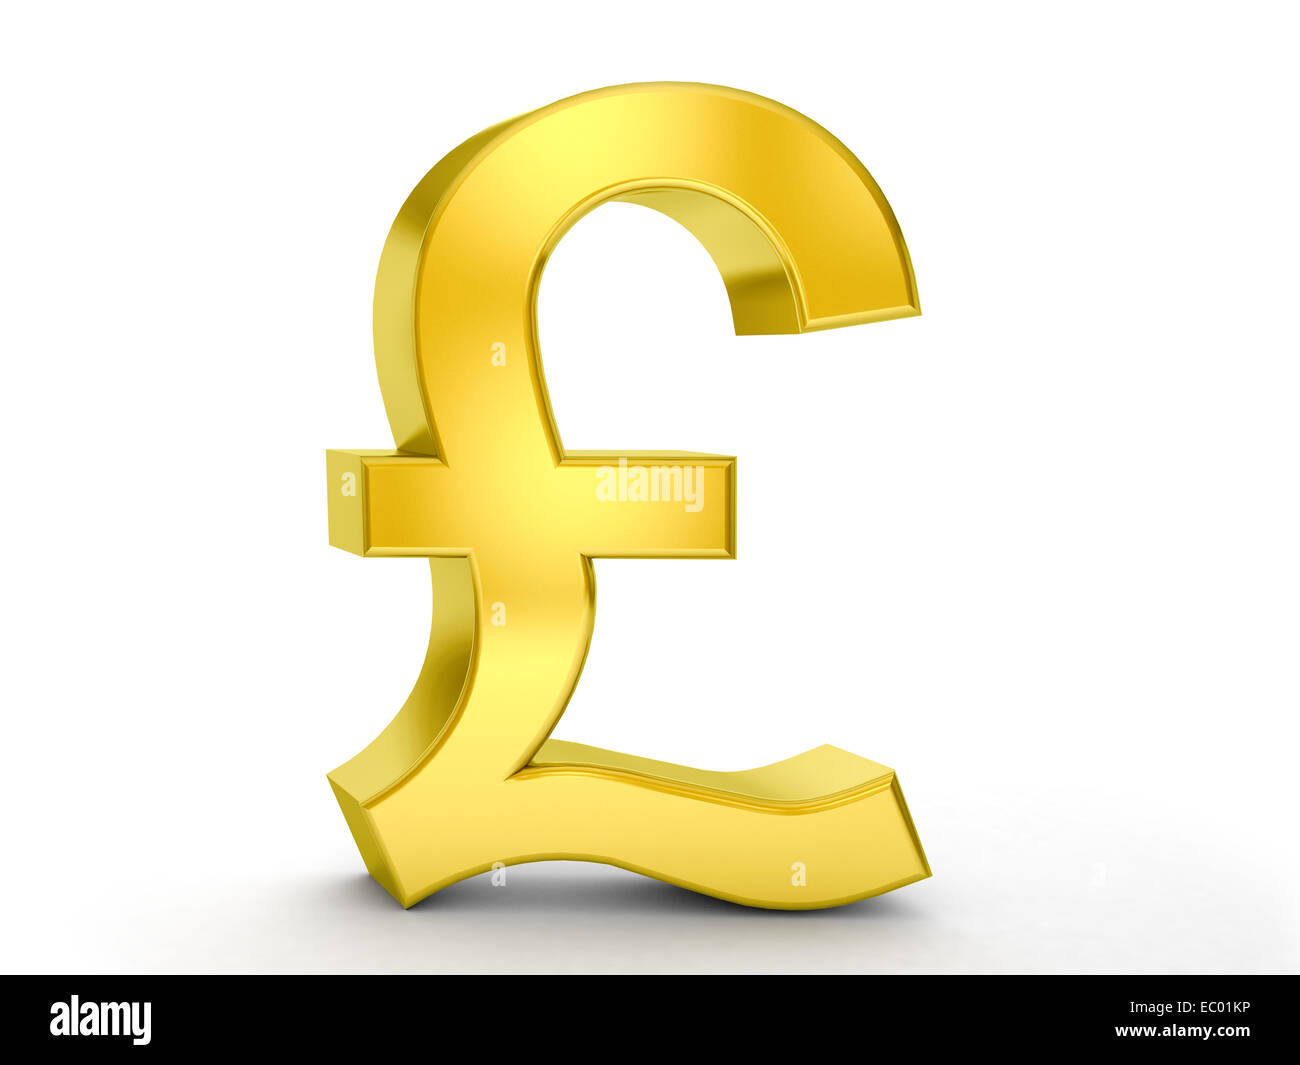 Pound Sign Stock Photos Pound Sign Stock Images Alamy